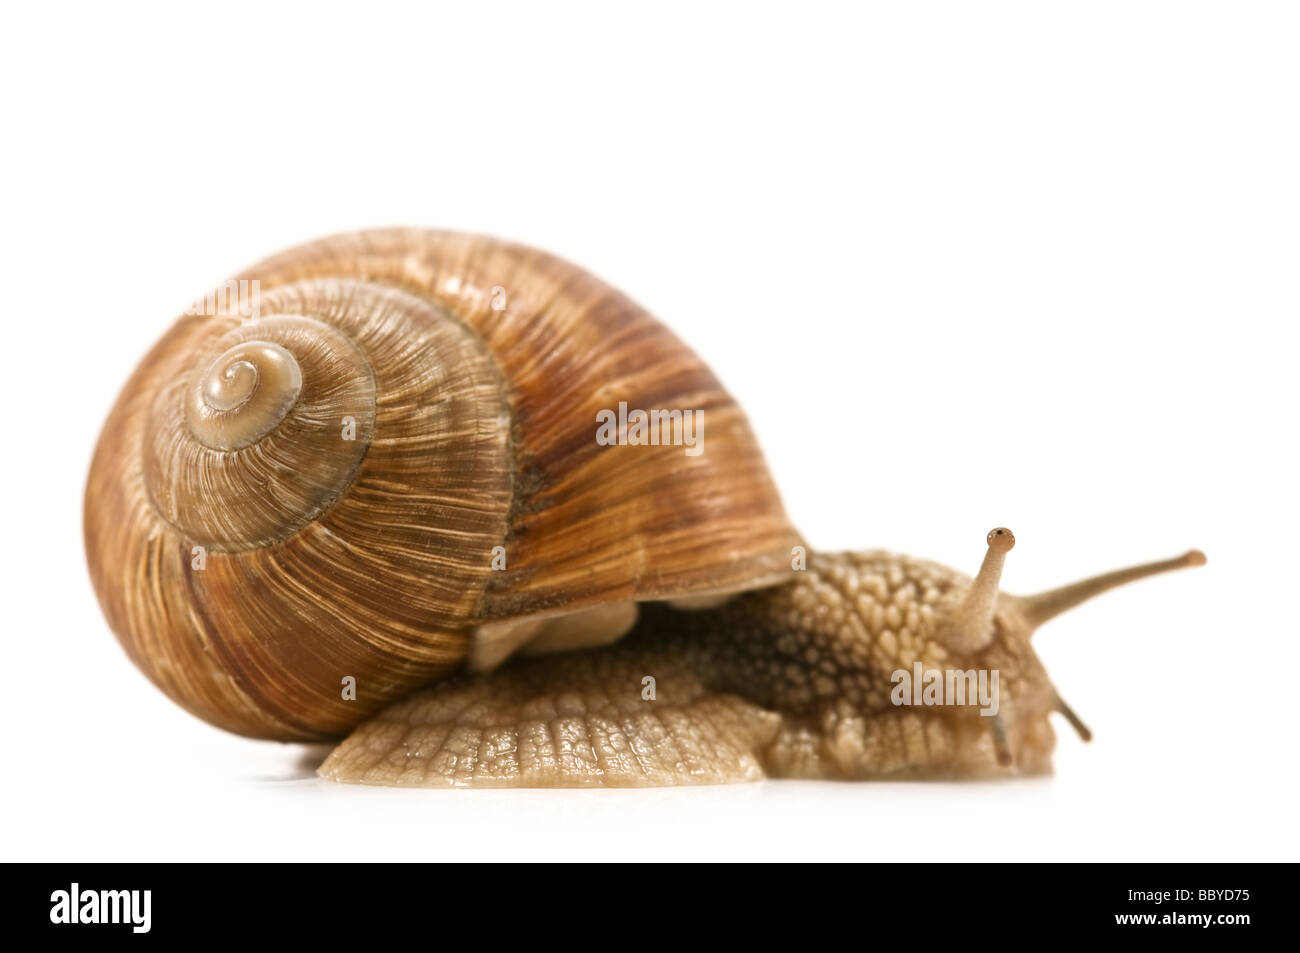 snail isolated on the white background - Stock Image